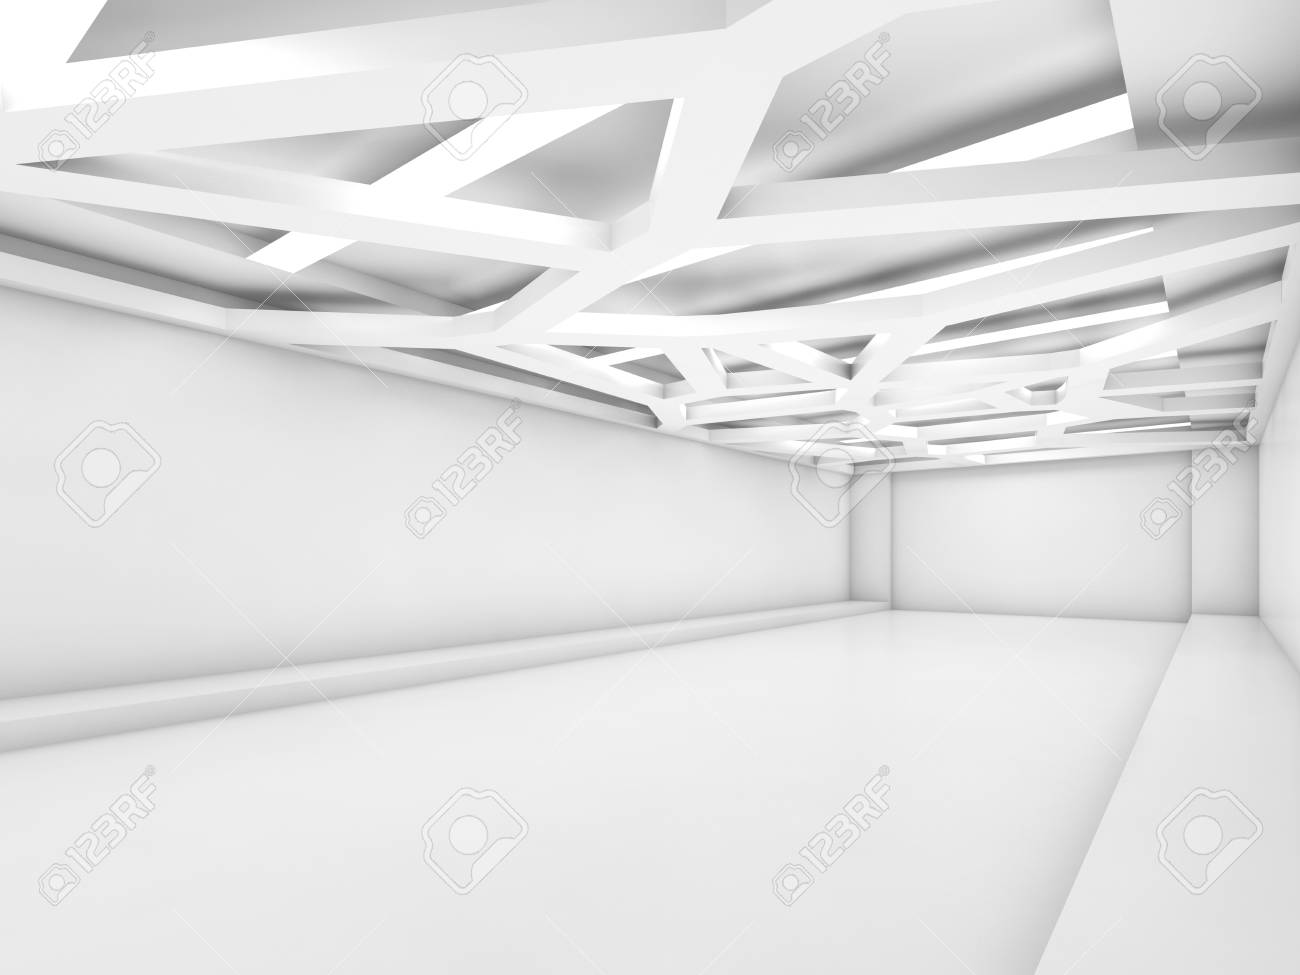 Abstract Empty White Interior Background With Decorative Ceiling Stock Photo Picture And Royalty Free Image Image 67979847